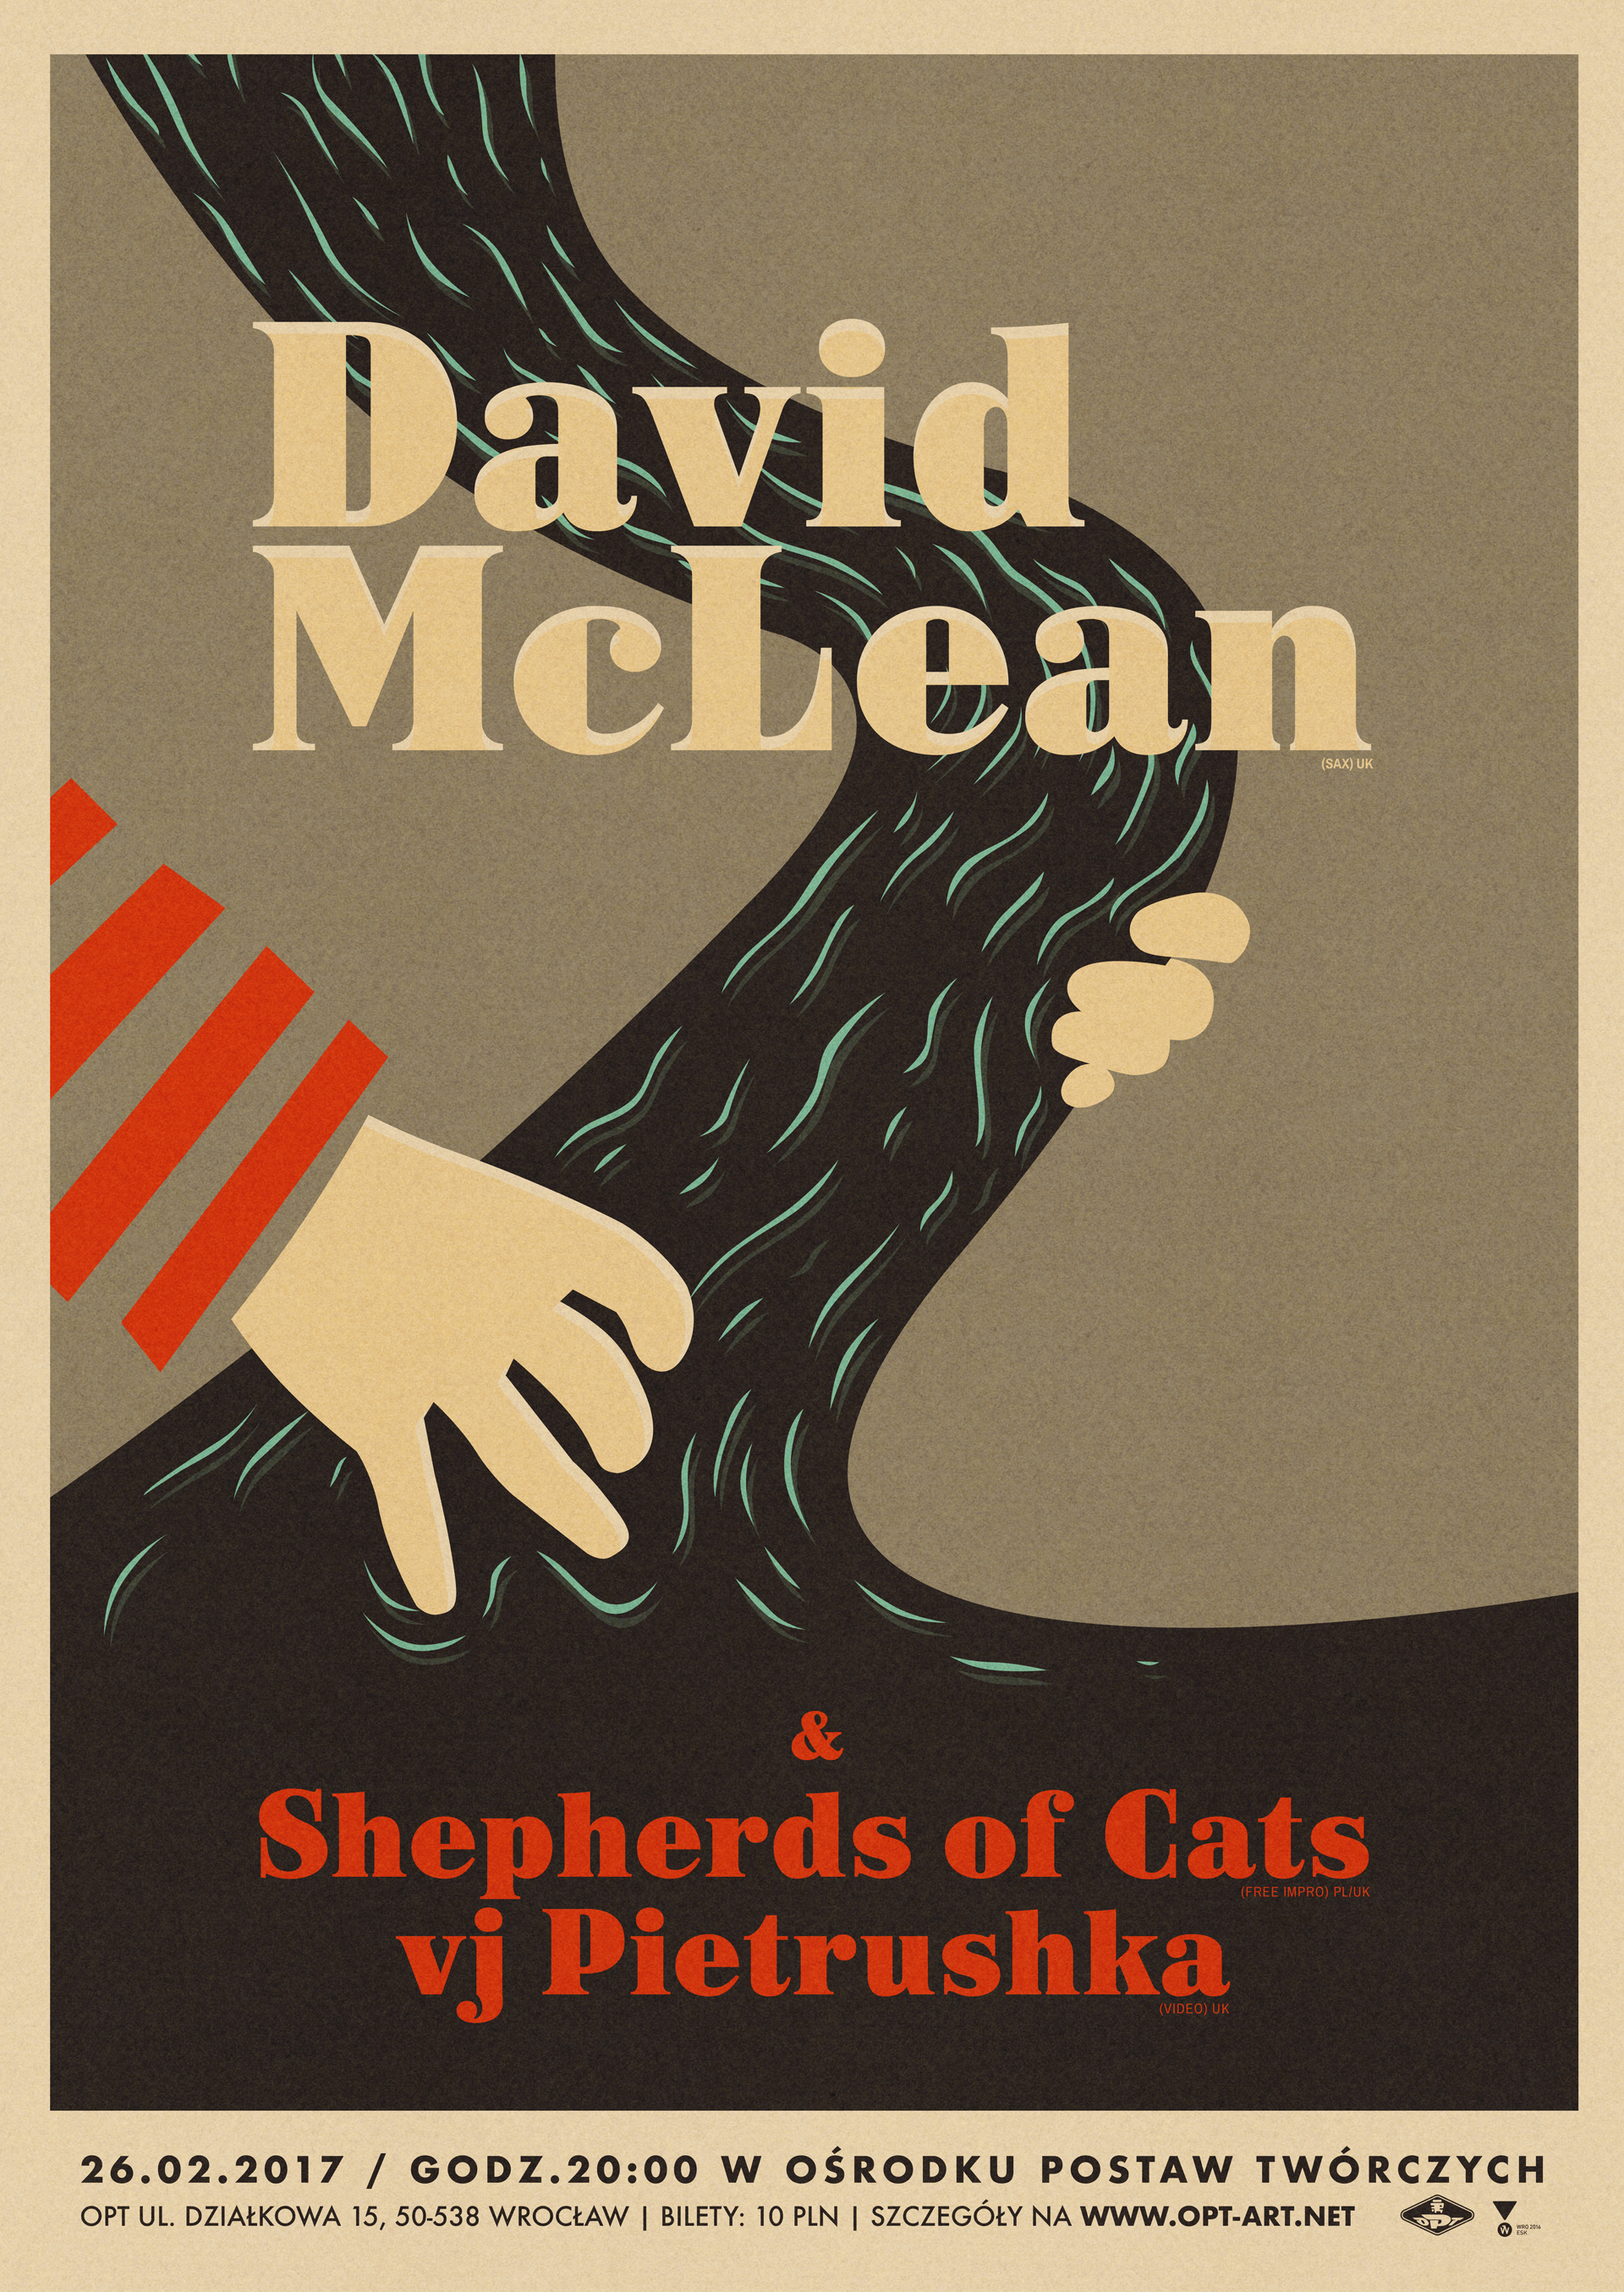 David McLean & Shepherds of Cats & VJ Pietrushka